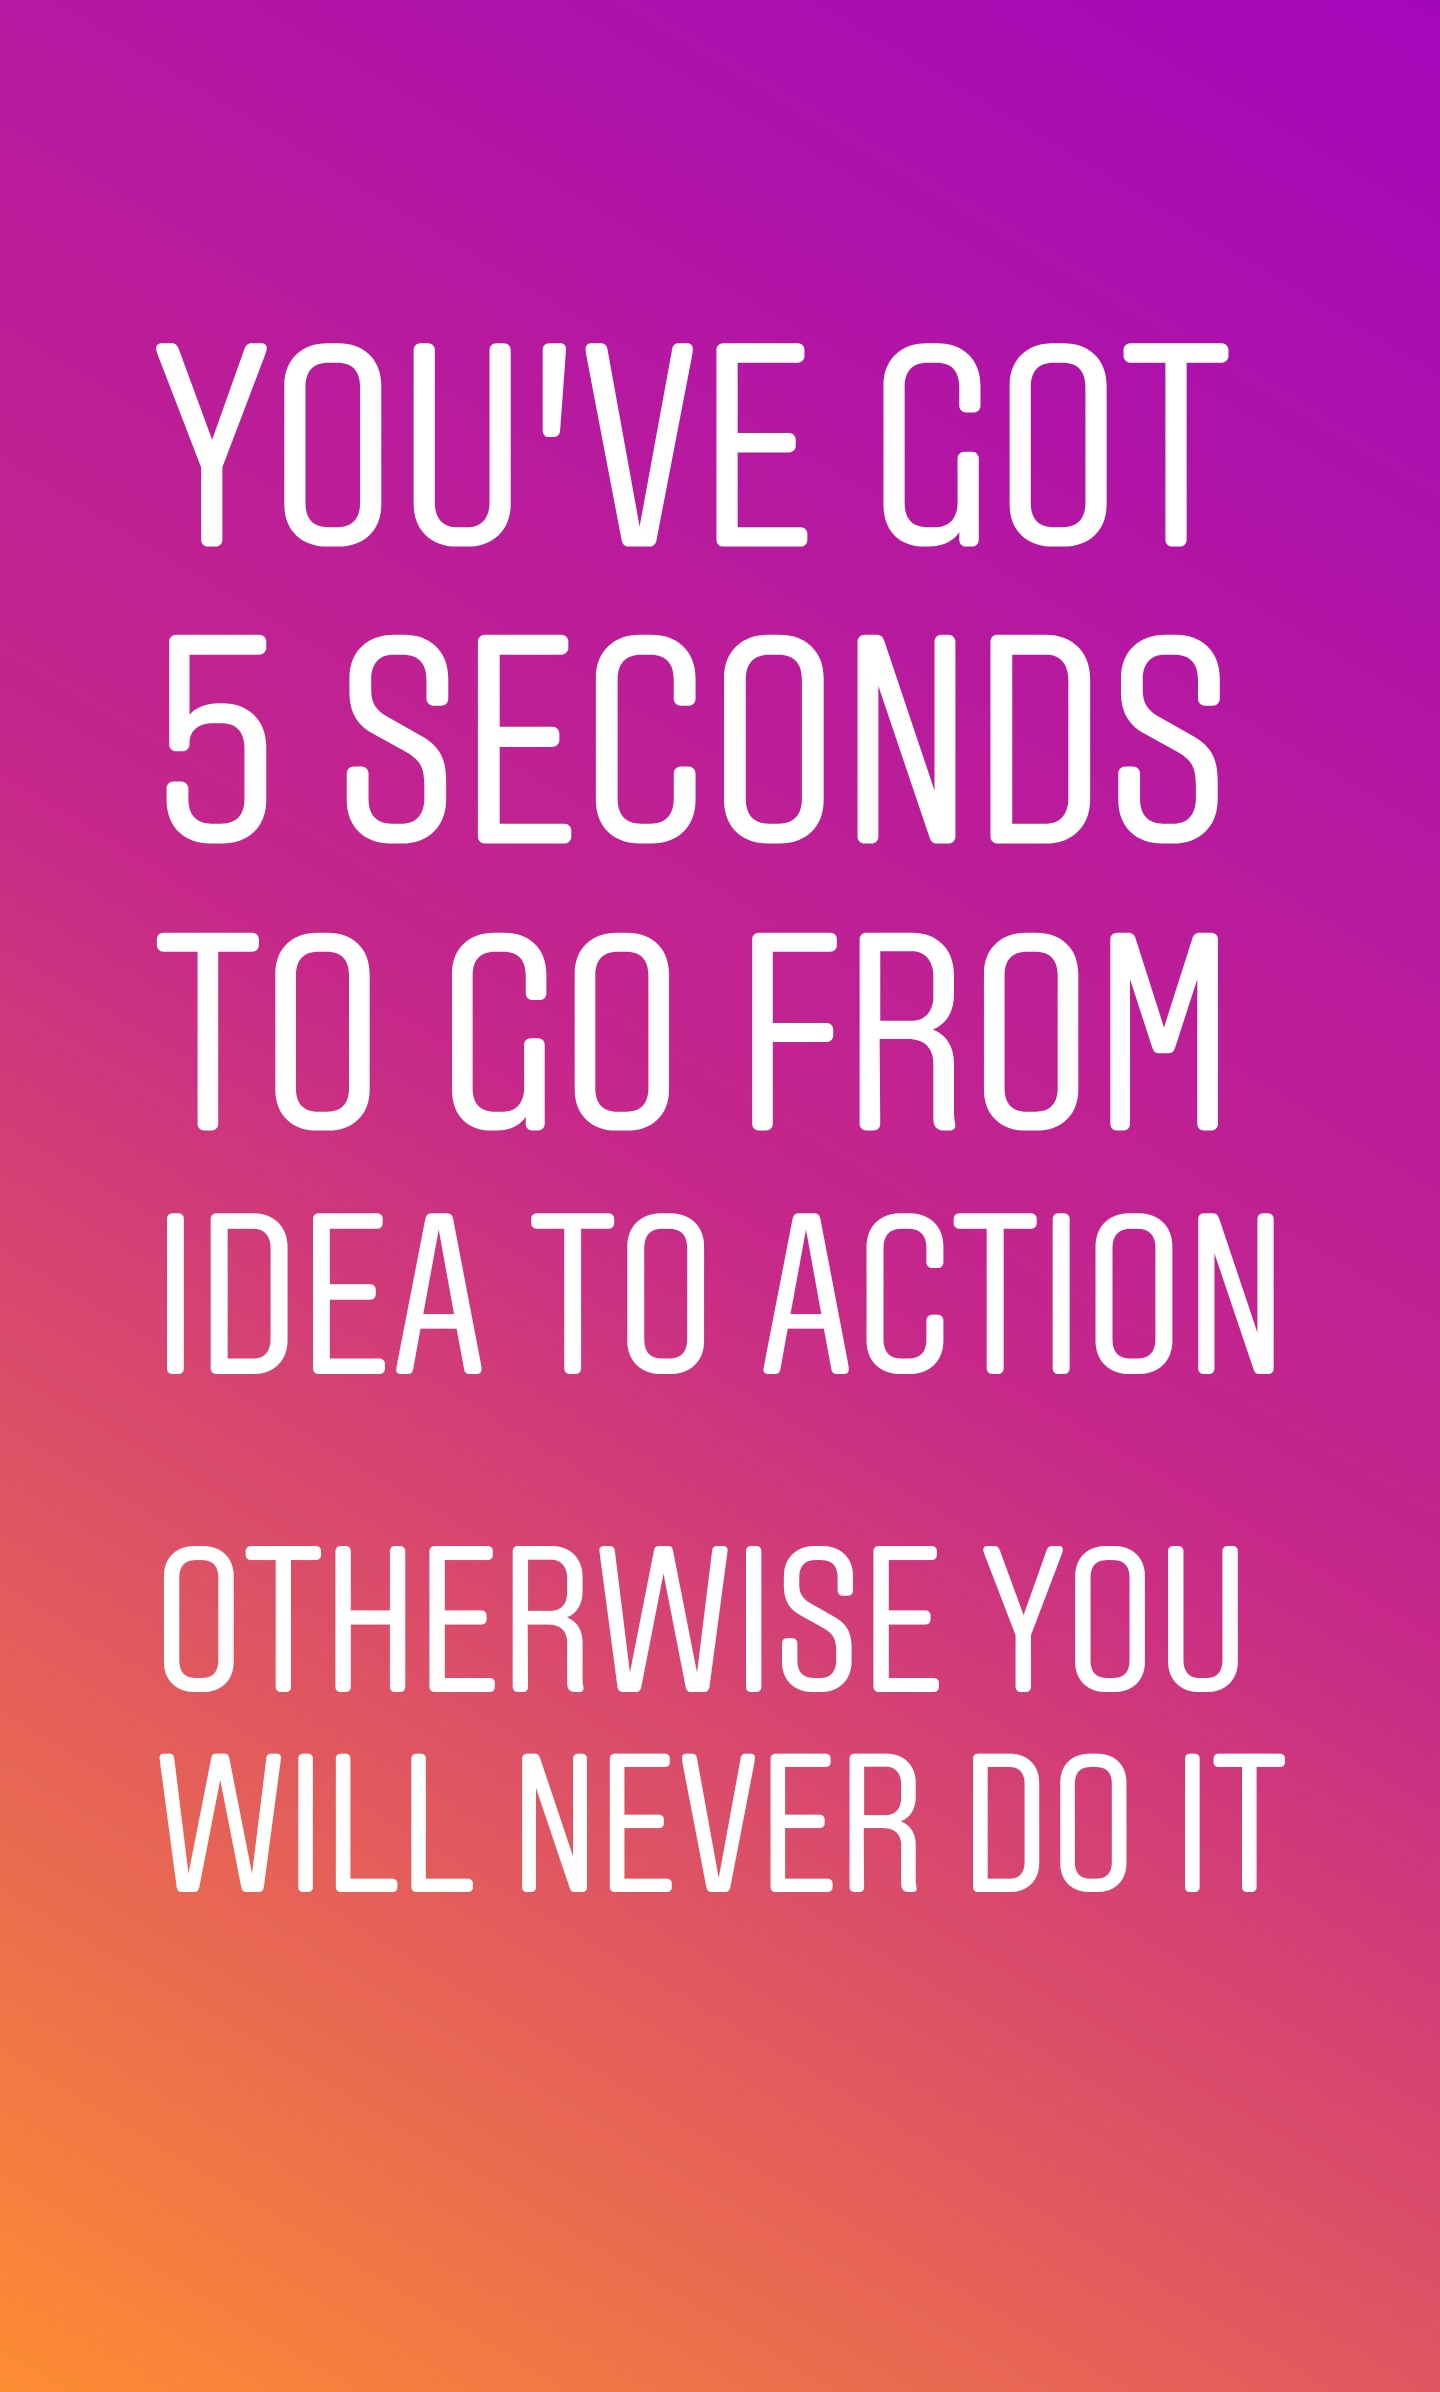 [Image] Take action now!